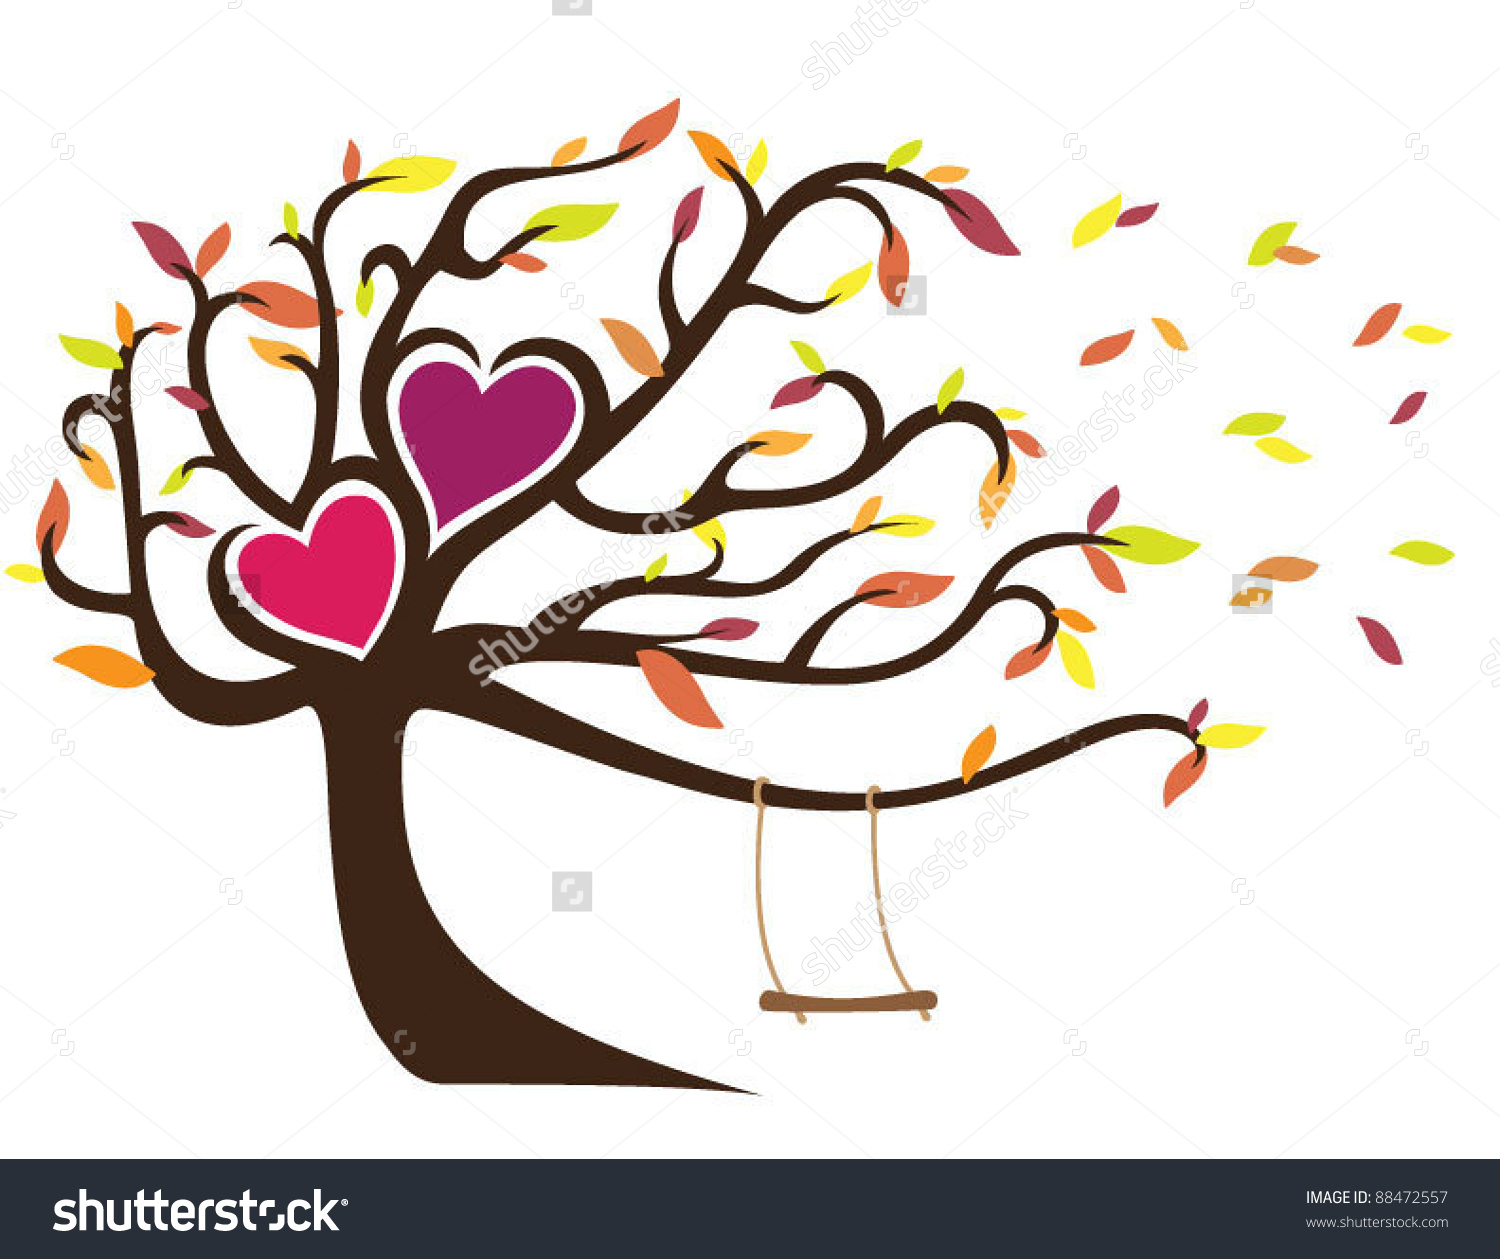 Windy Fall Tree With Swing Holding Two Hearts Stock Vector.